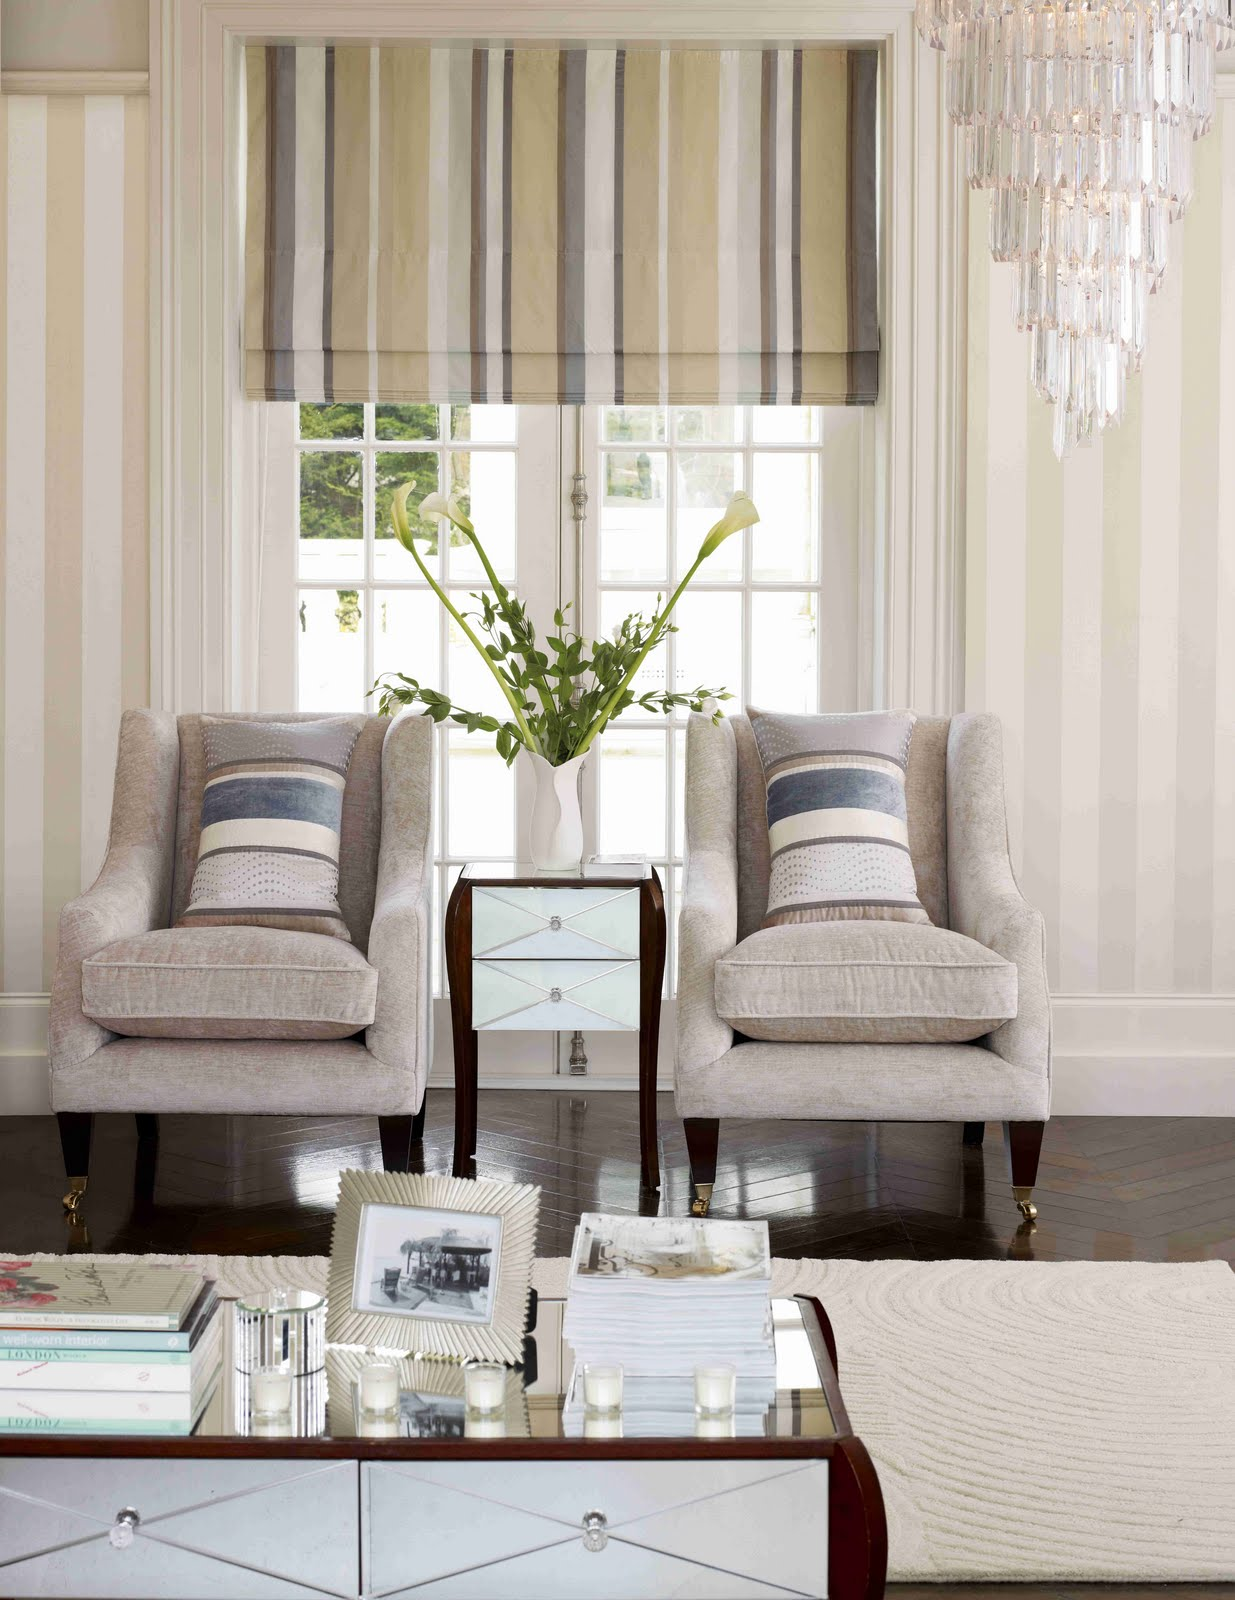 The bride 39 s diary home lifestyle laura ashley new - Lifestyle home collection ...